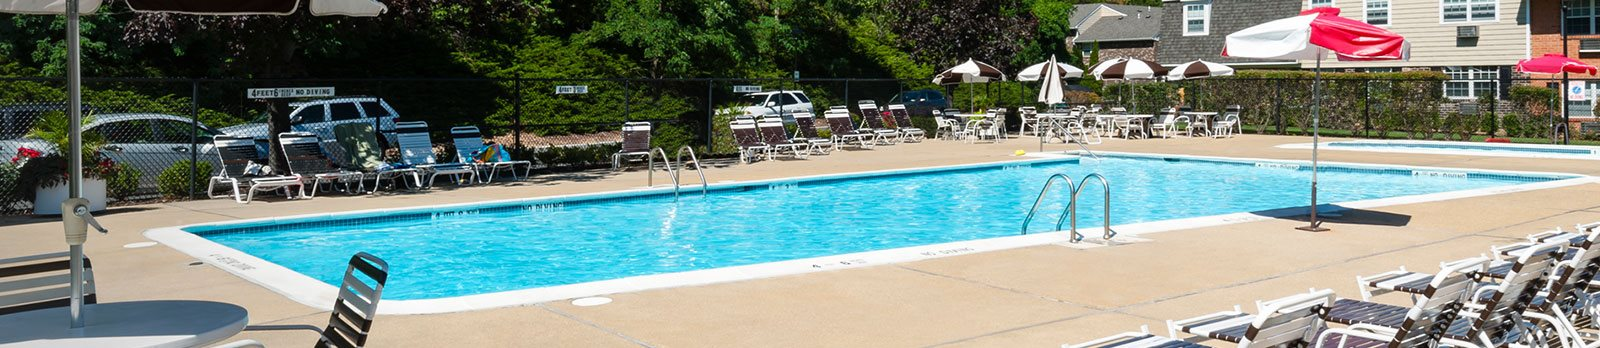 Swimming Pool With Relaxing Sundecks at Norwich Gate, East Norwich, New York